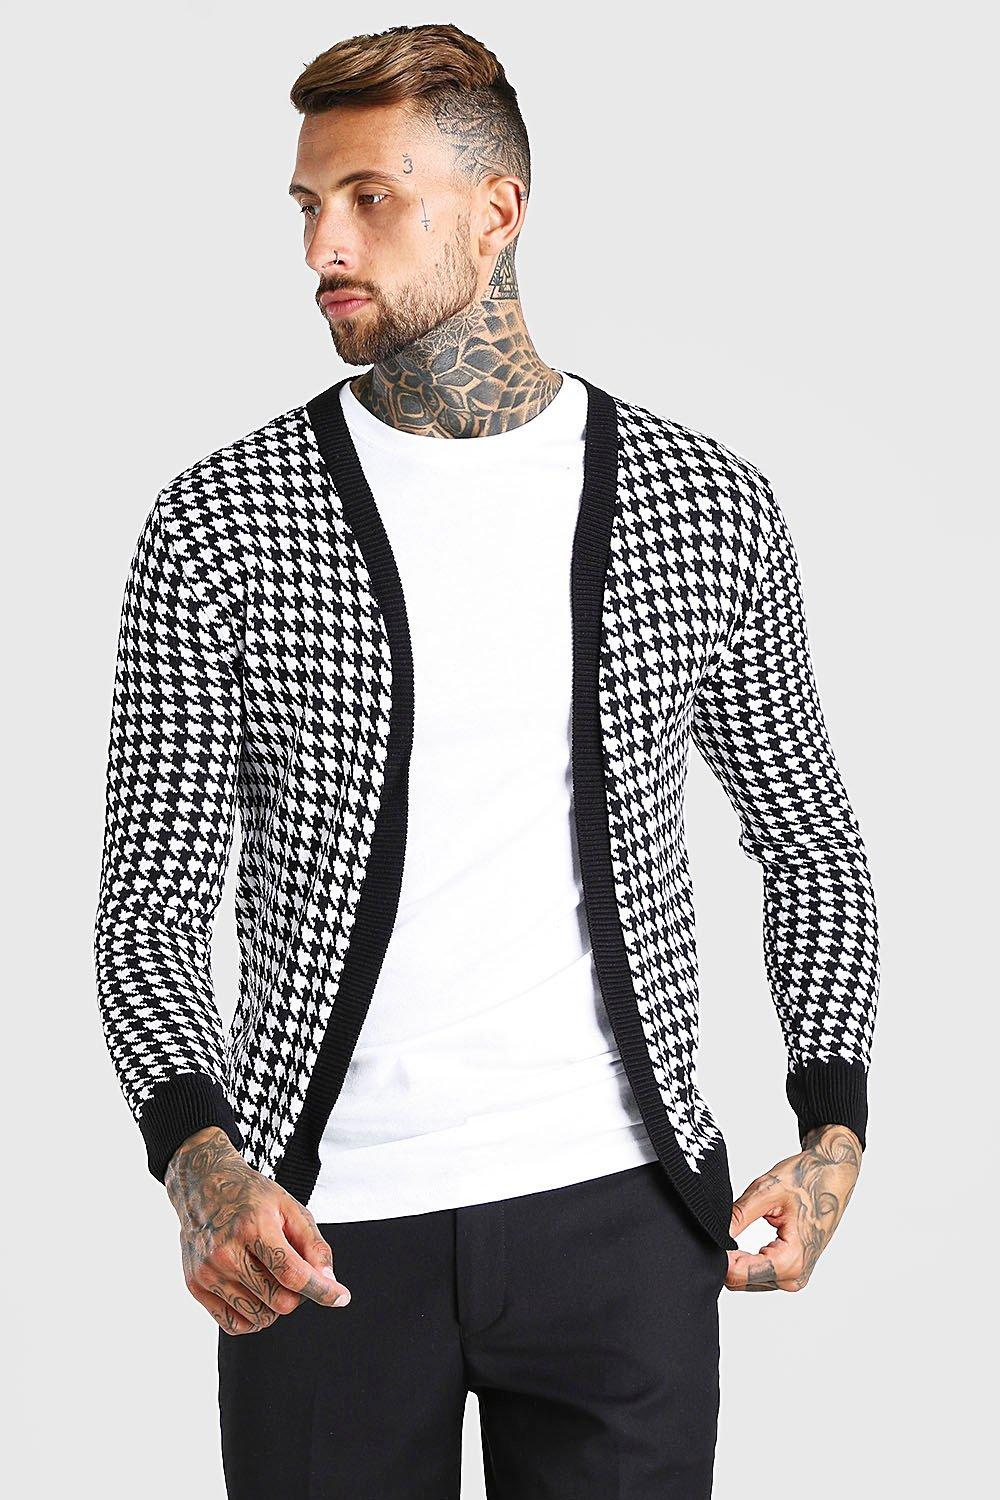 60s 70s Men's Jackets & Sweaters Mens Dogtooth Knitted Cardigan - Black $19.20 AT vintagedancer.com